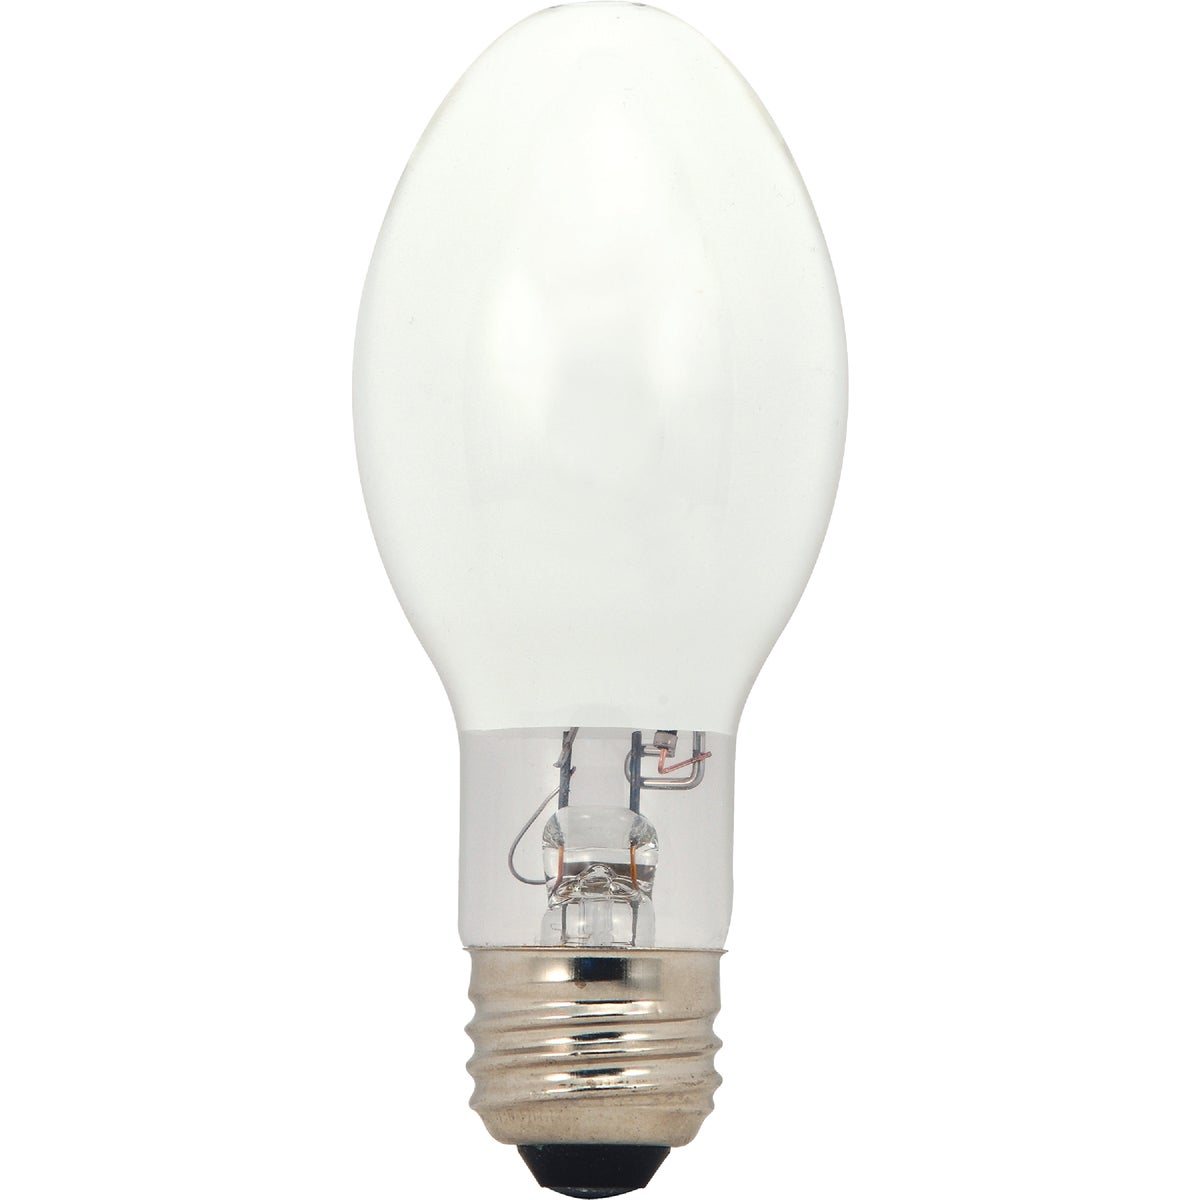 100W MERCURY VAPOR BULB - H38100MDX/4 by Cooper Lighting